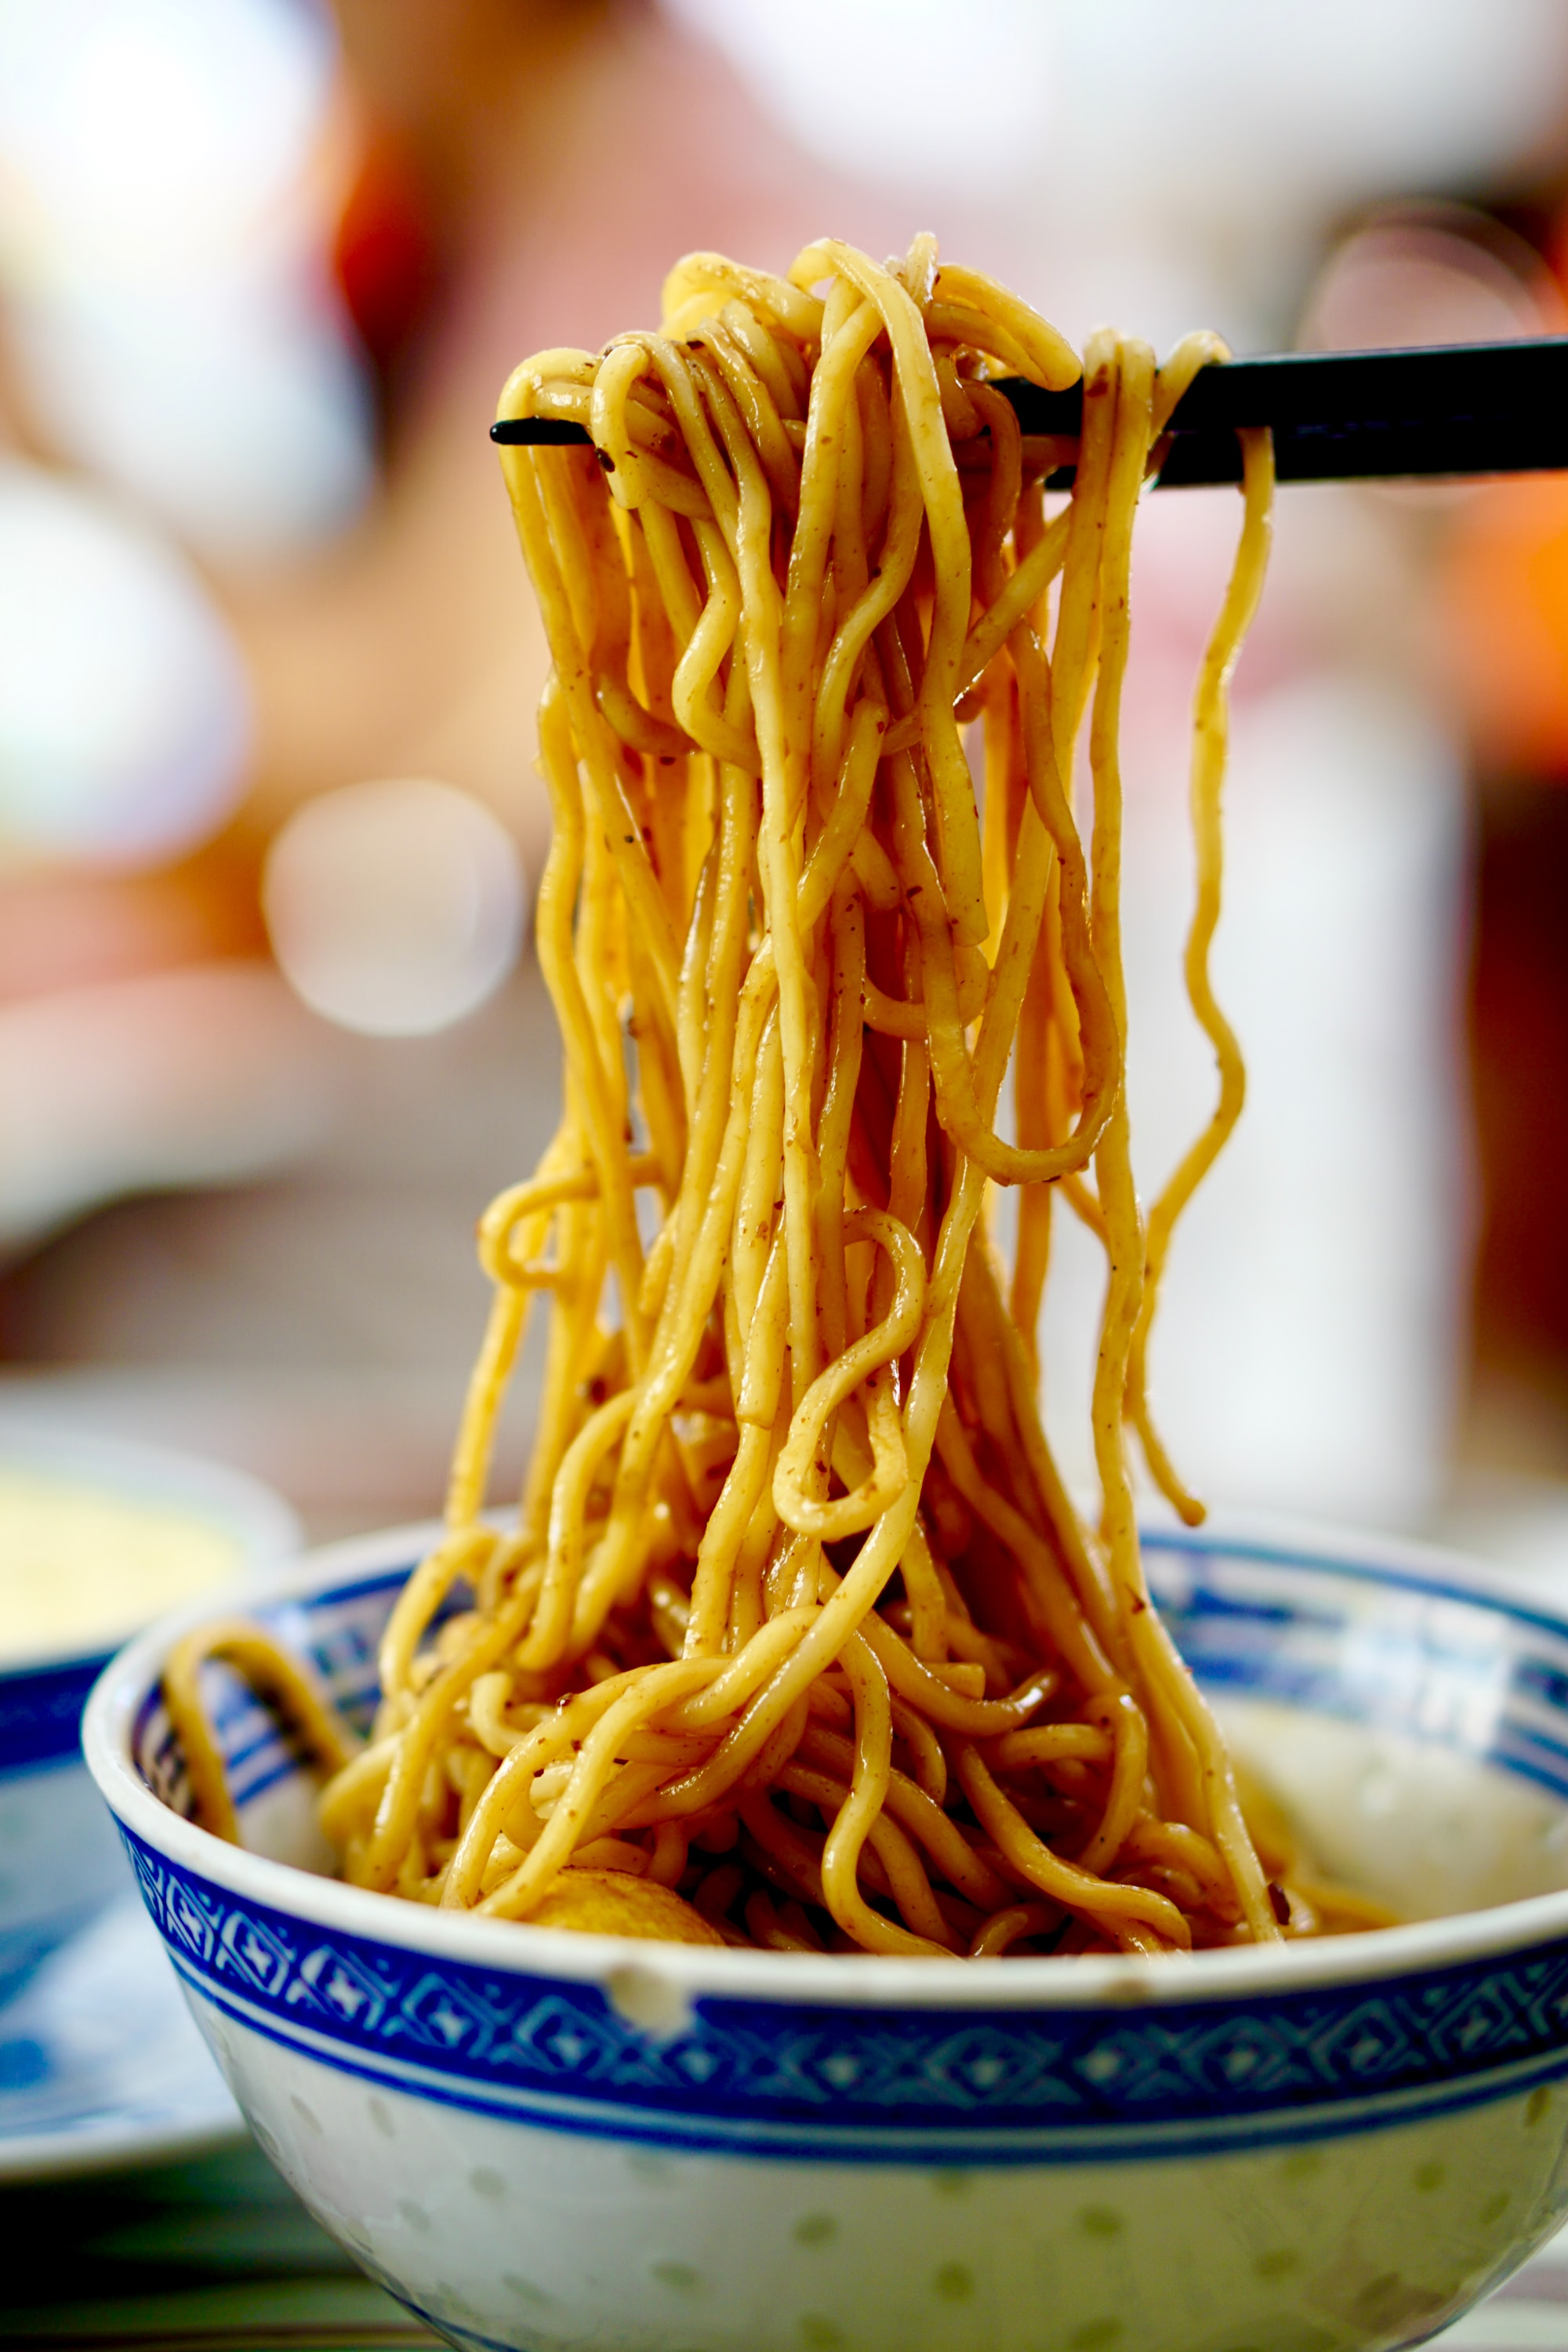 Noodle Theory Part 1: The Illusion of Skill